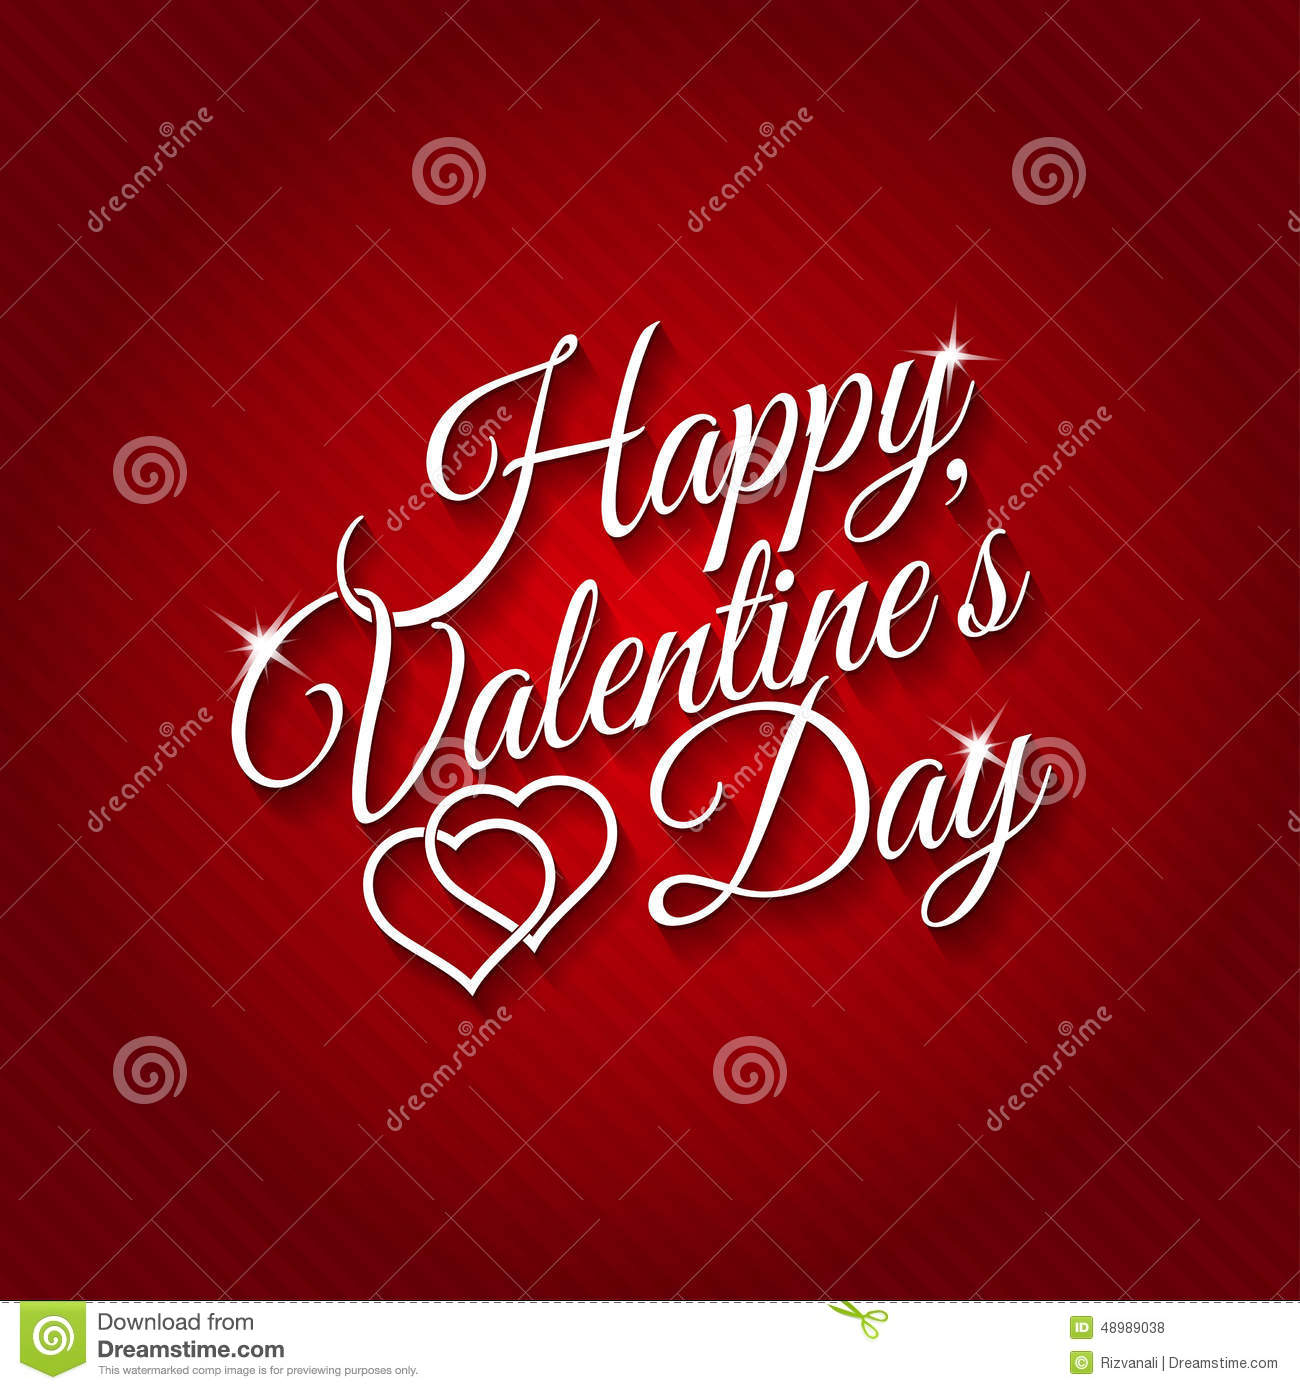 February 14 Happy Valentines Day Card Vector Image 48989019 – Happy Valentines Day Cards